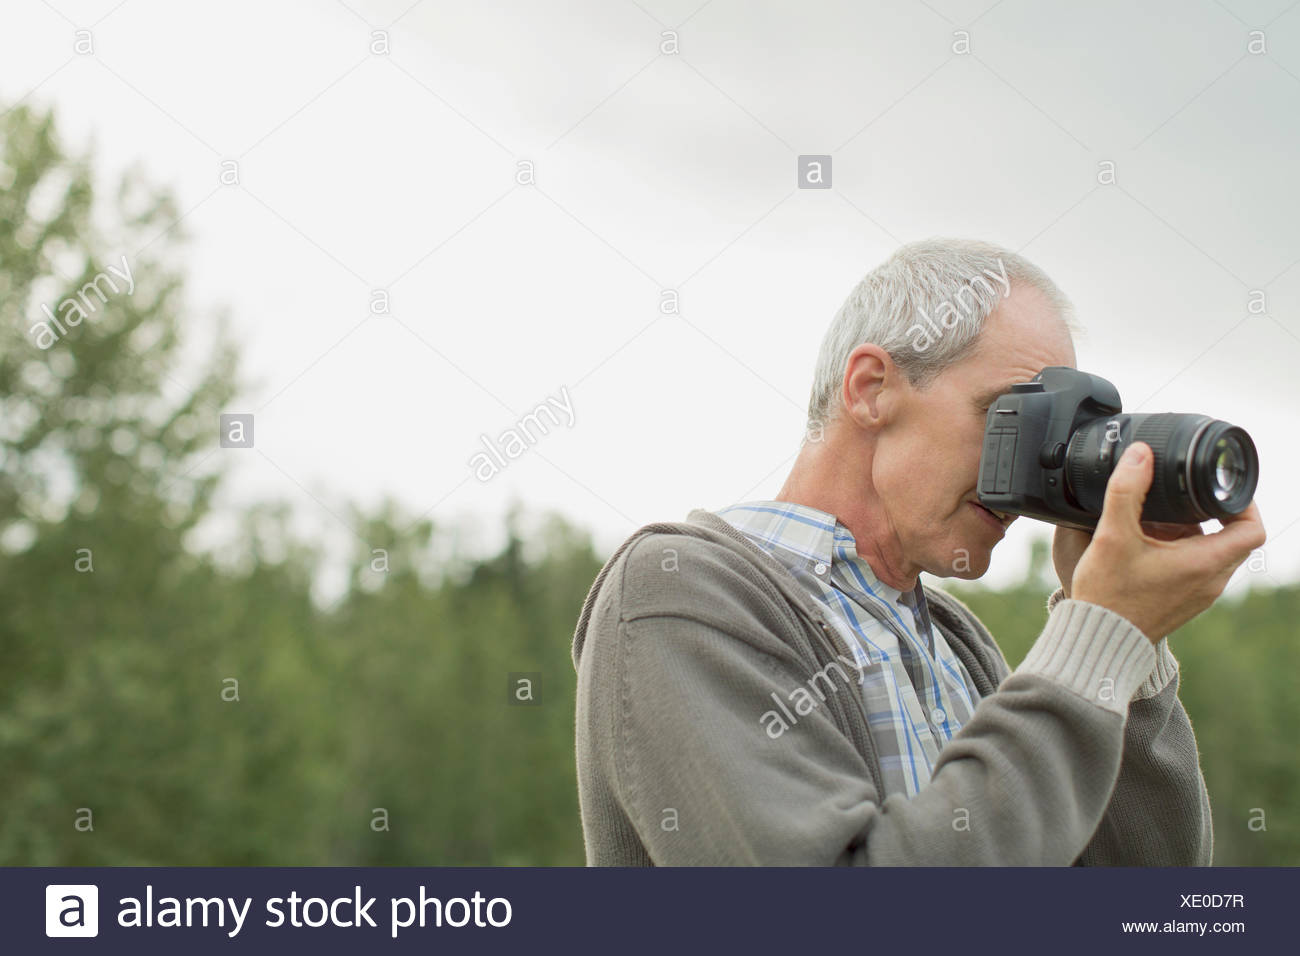 Middle-aged man taking pictures outdoors. - Stock Image